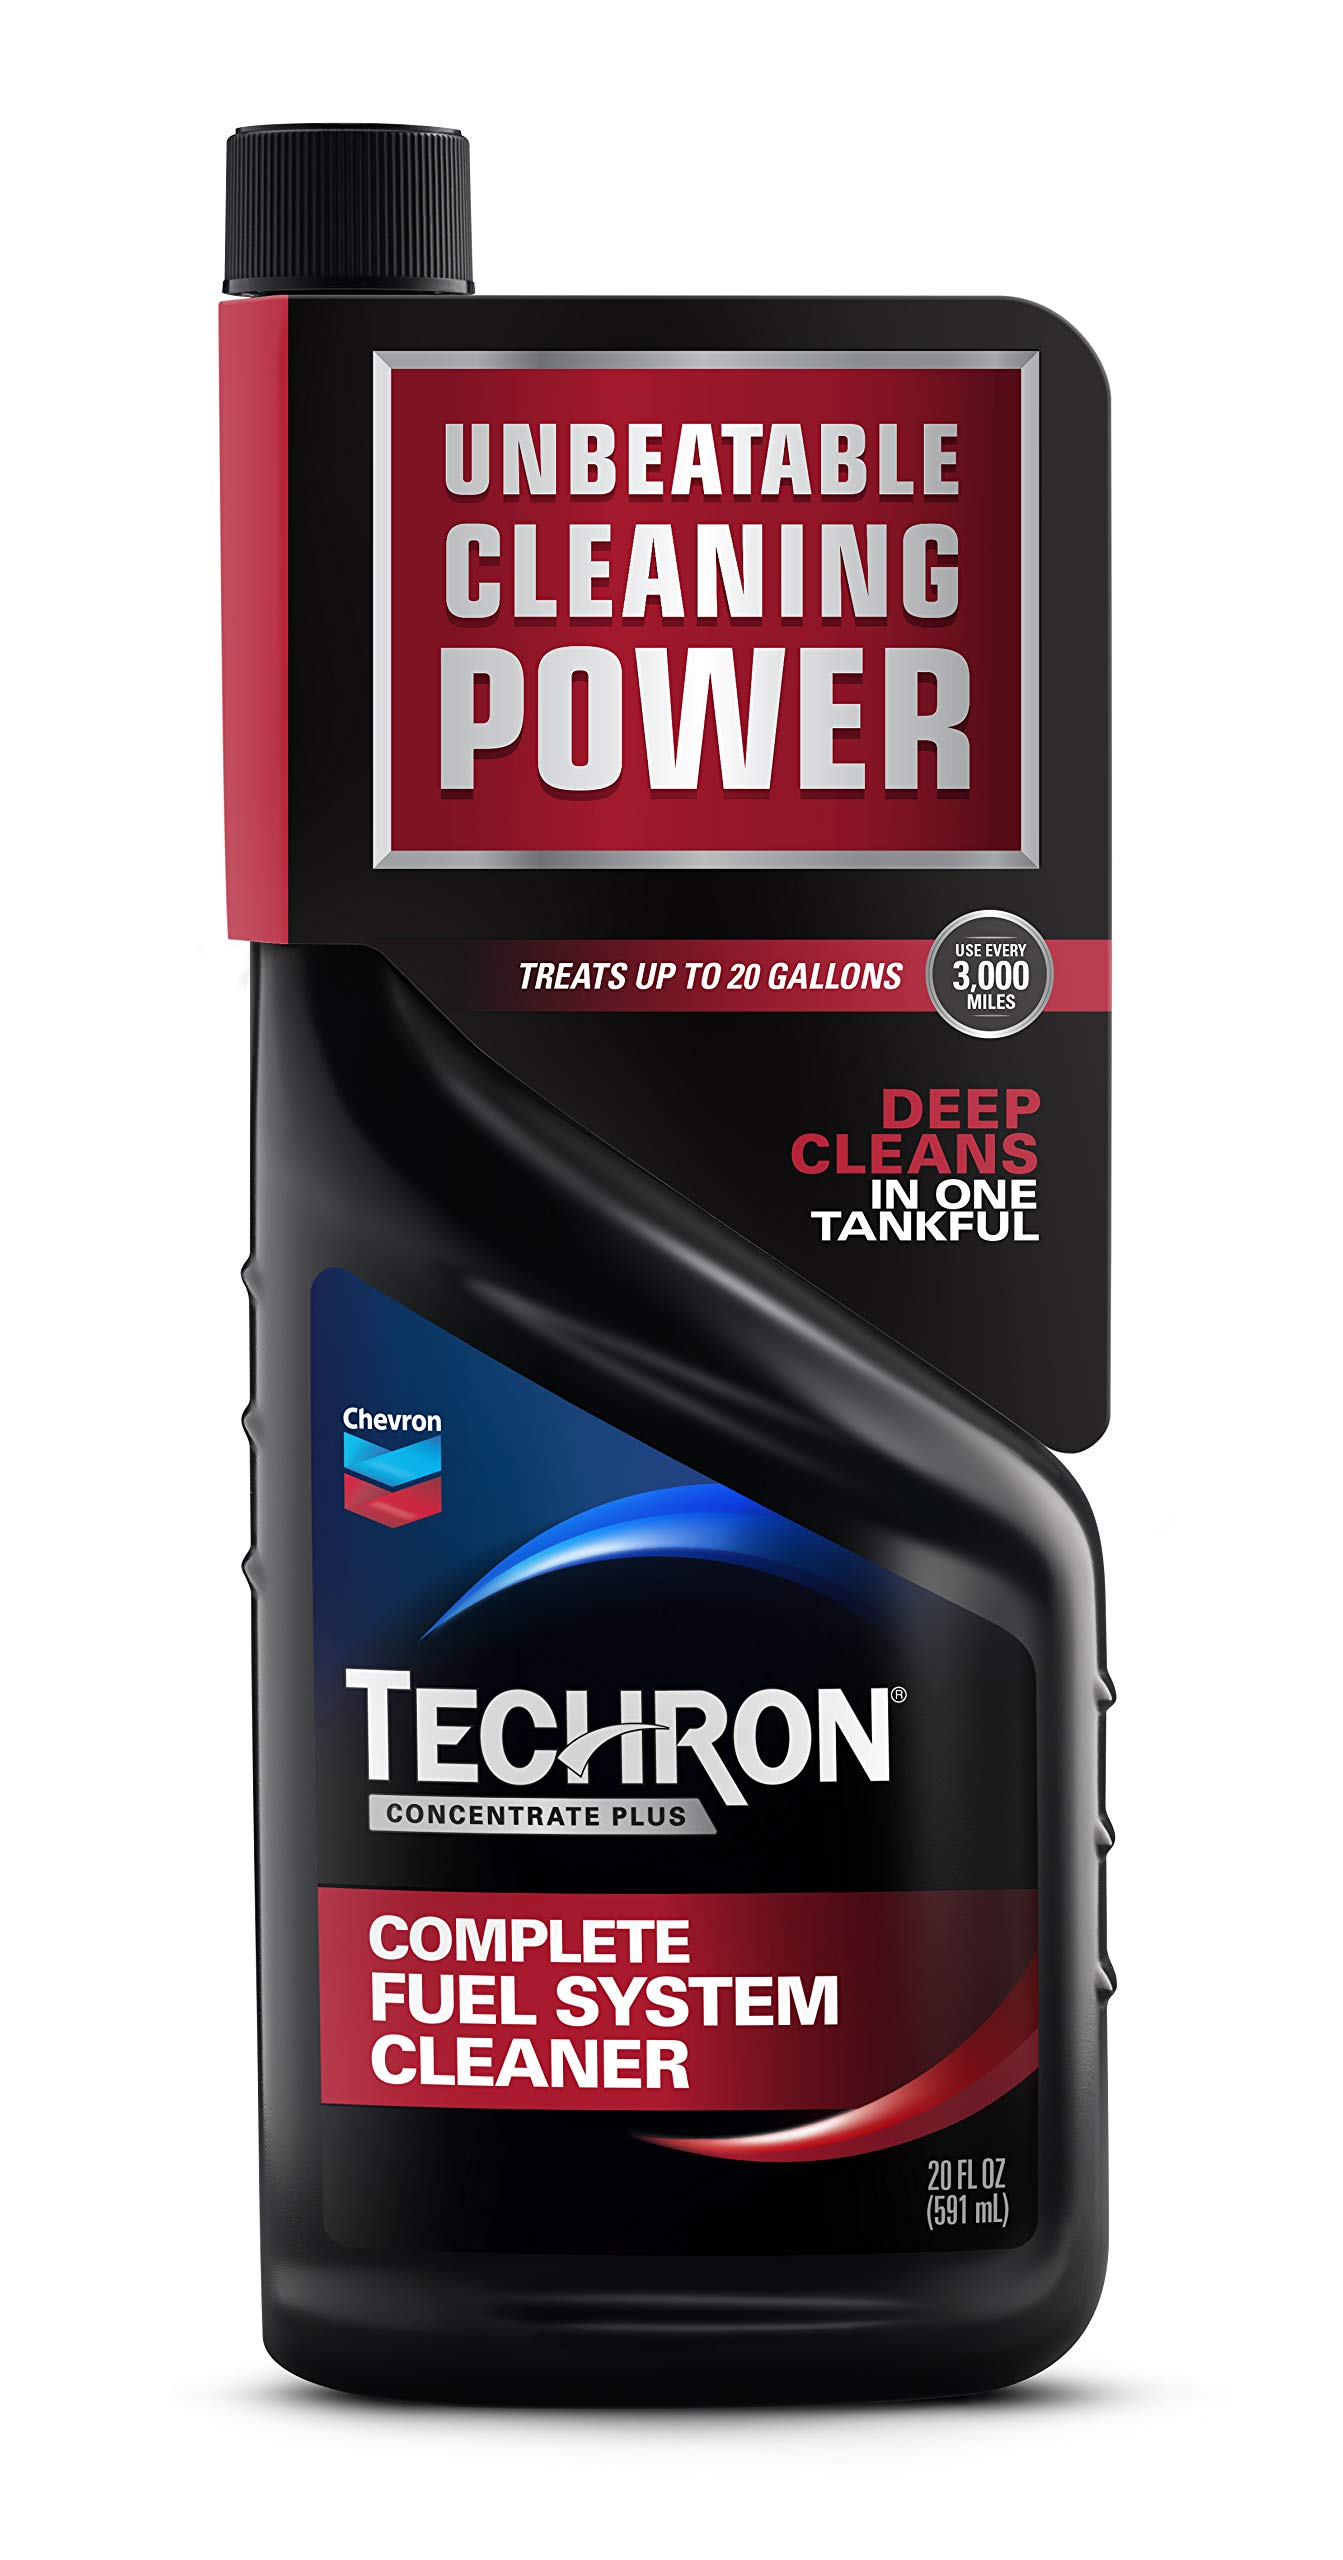 Chevron Techron Concentrate Plus Fuel System Cleaner - 20 oz.